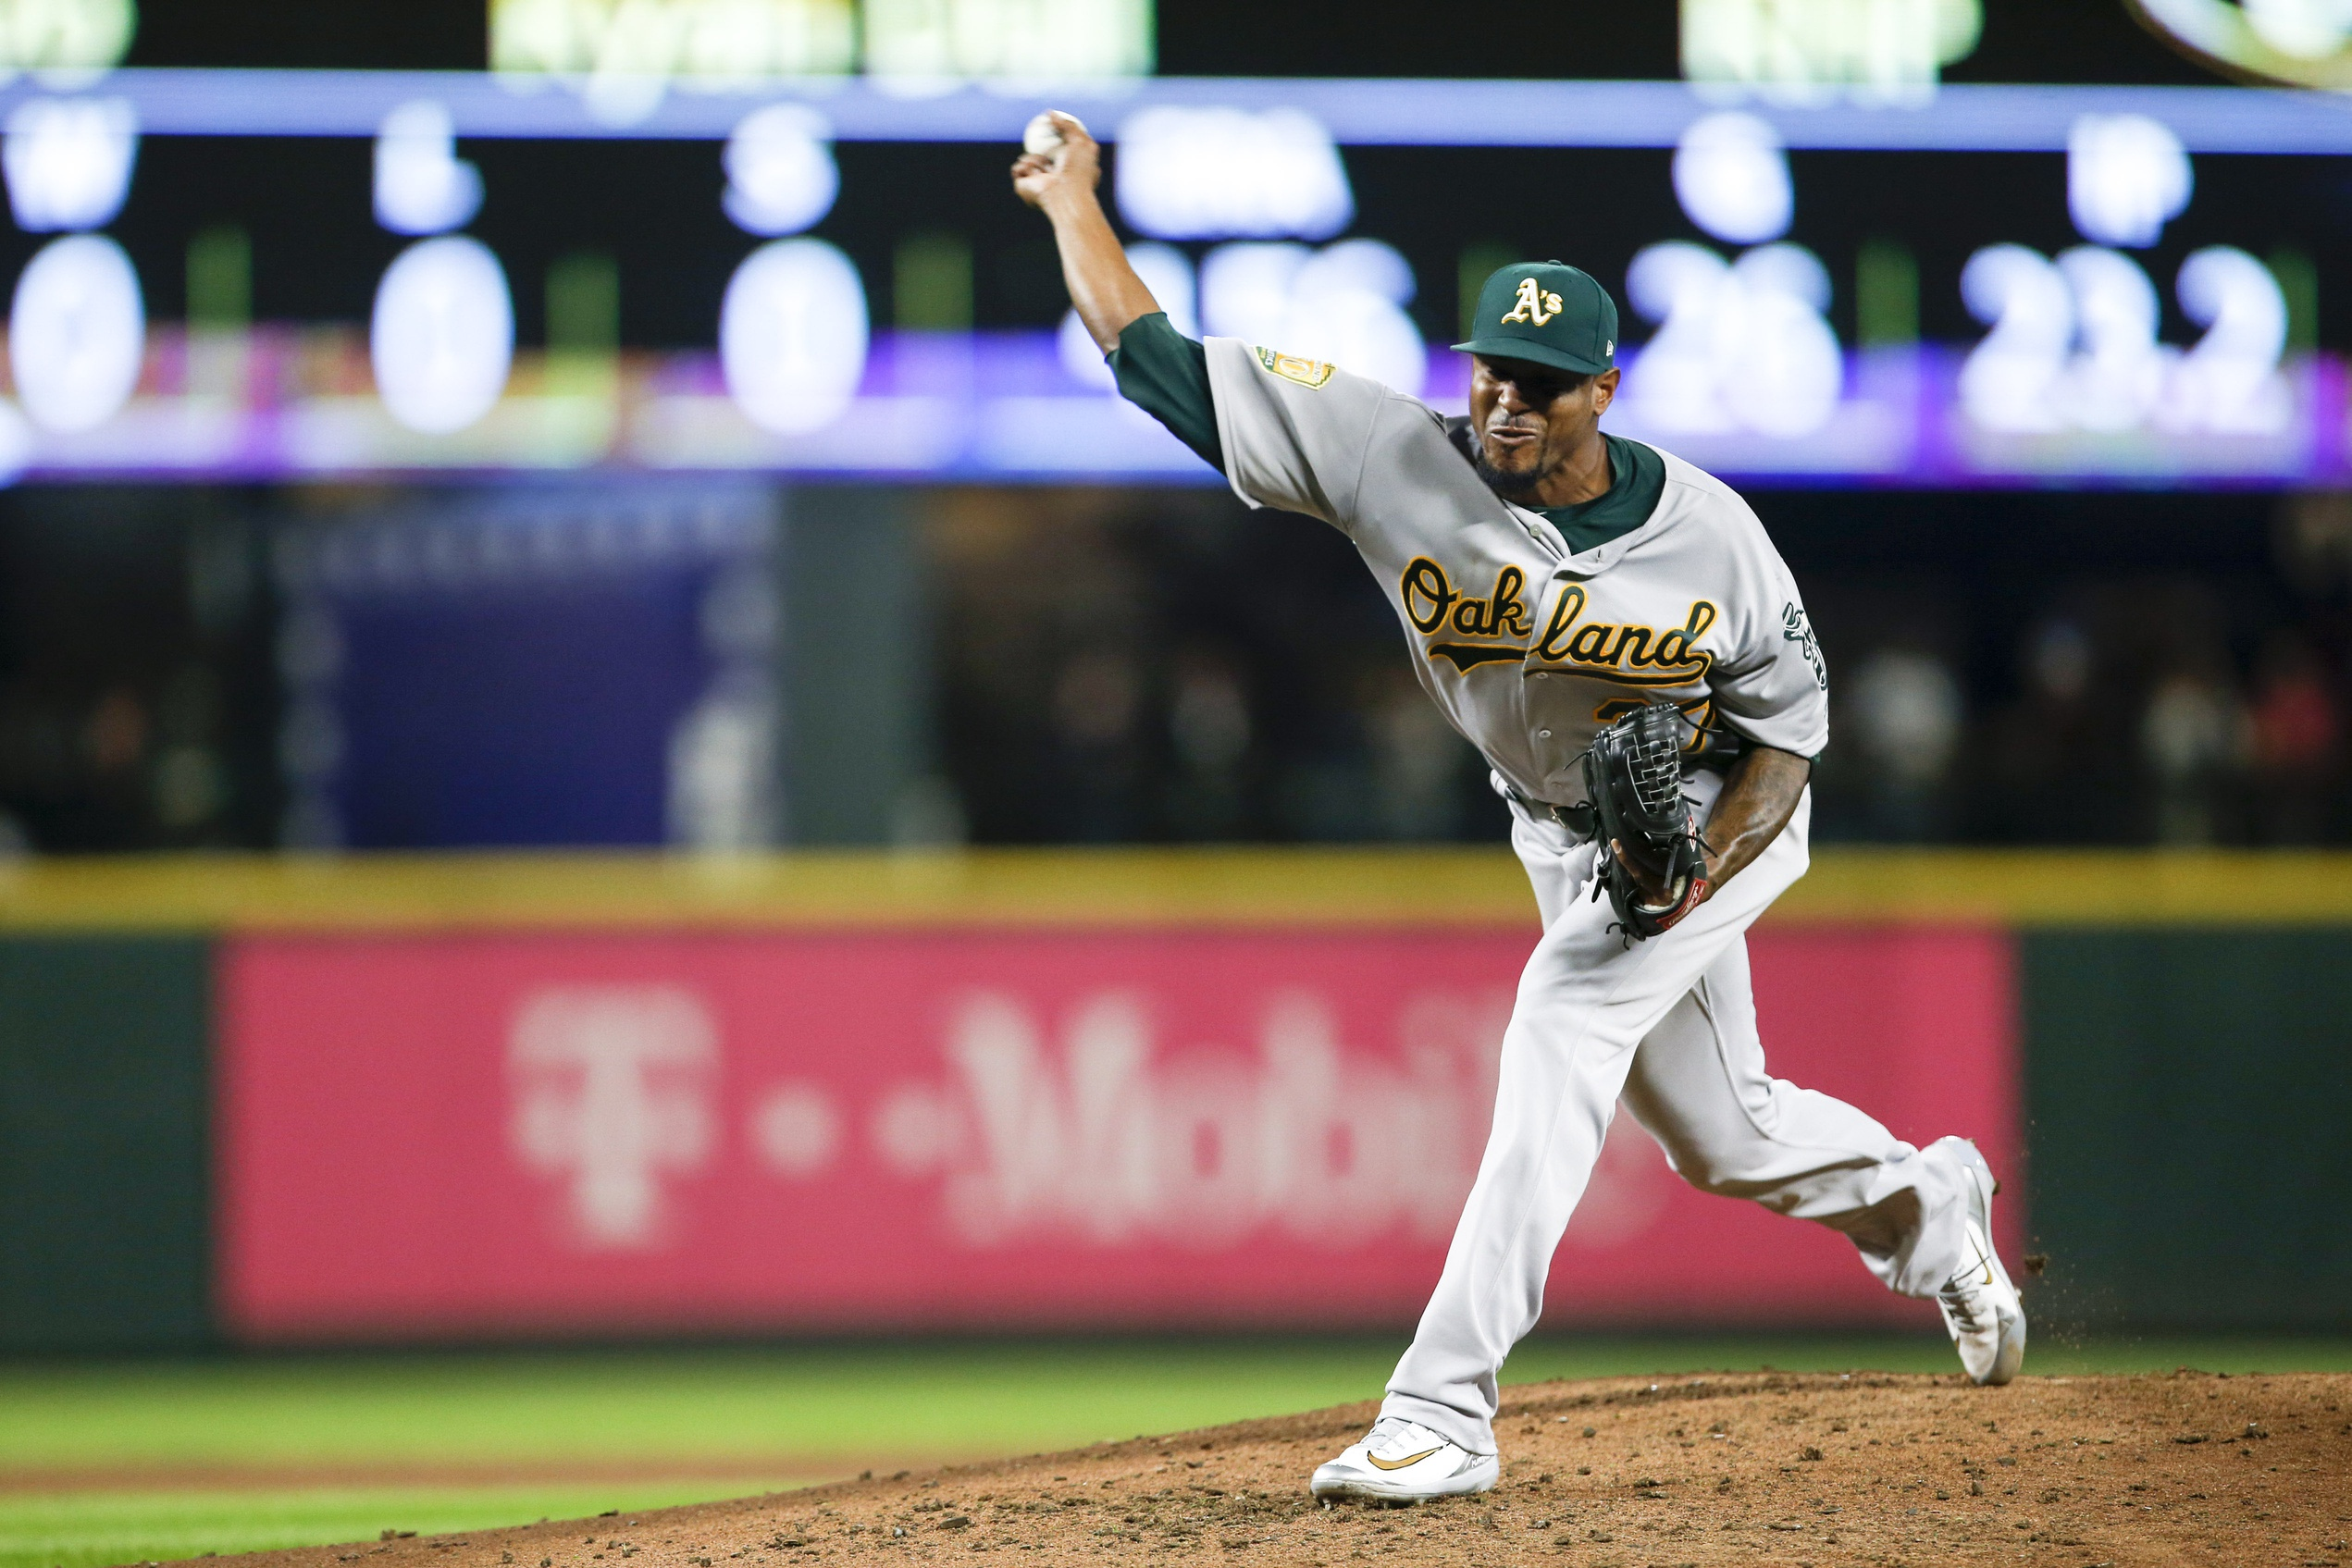 Mlb News Edwin Jackson To Pitch For Record 14Th Team  Hot Naked Girls-4300